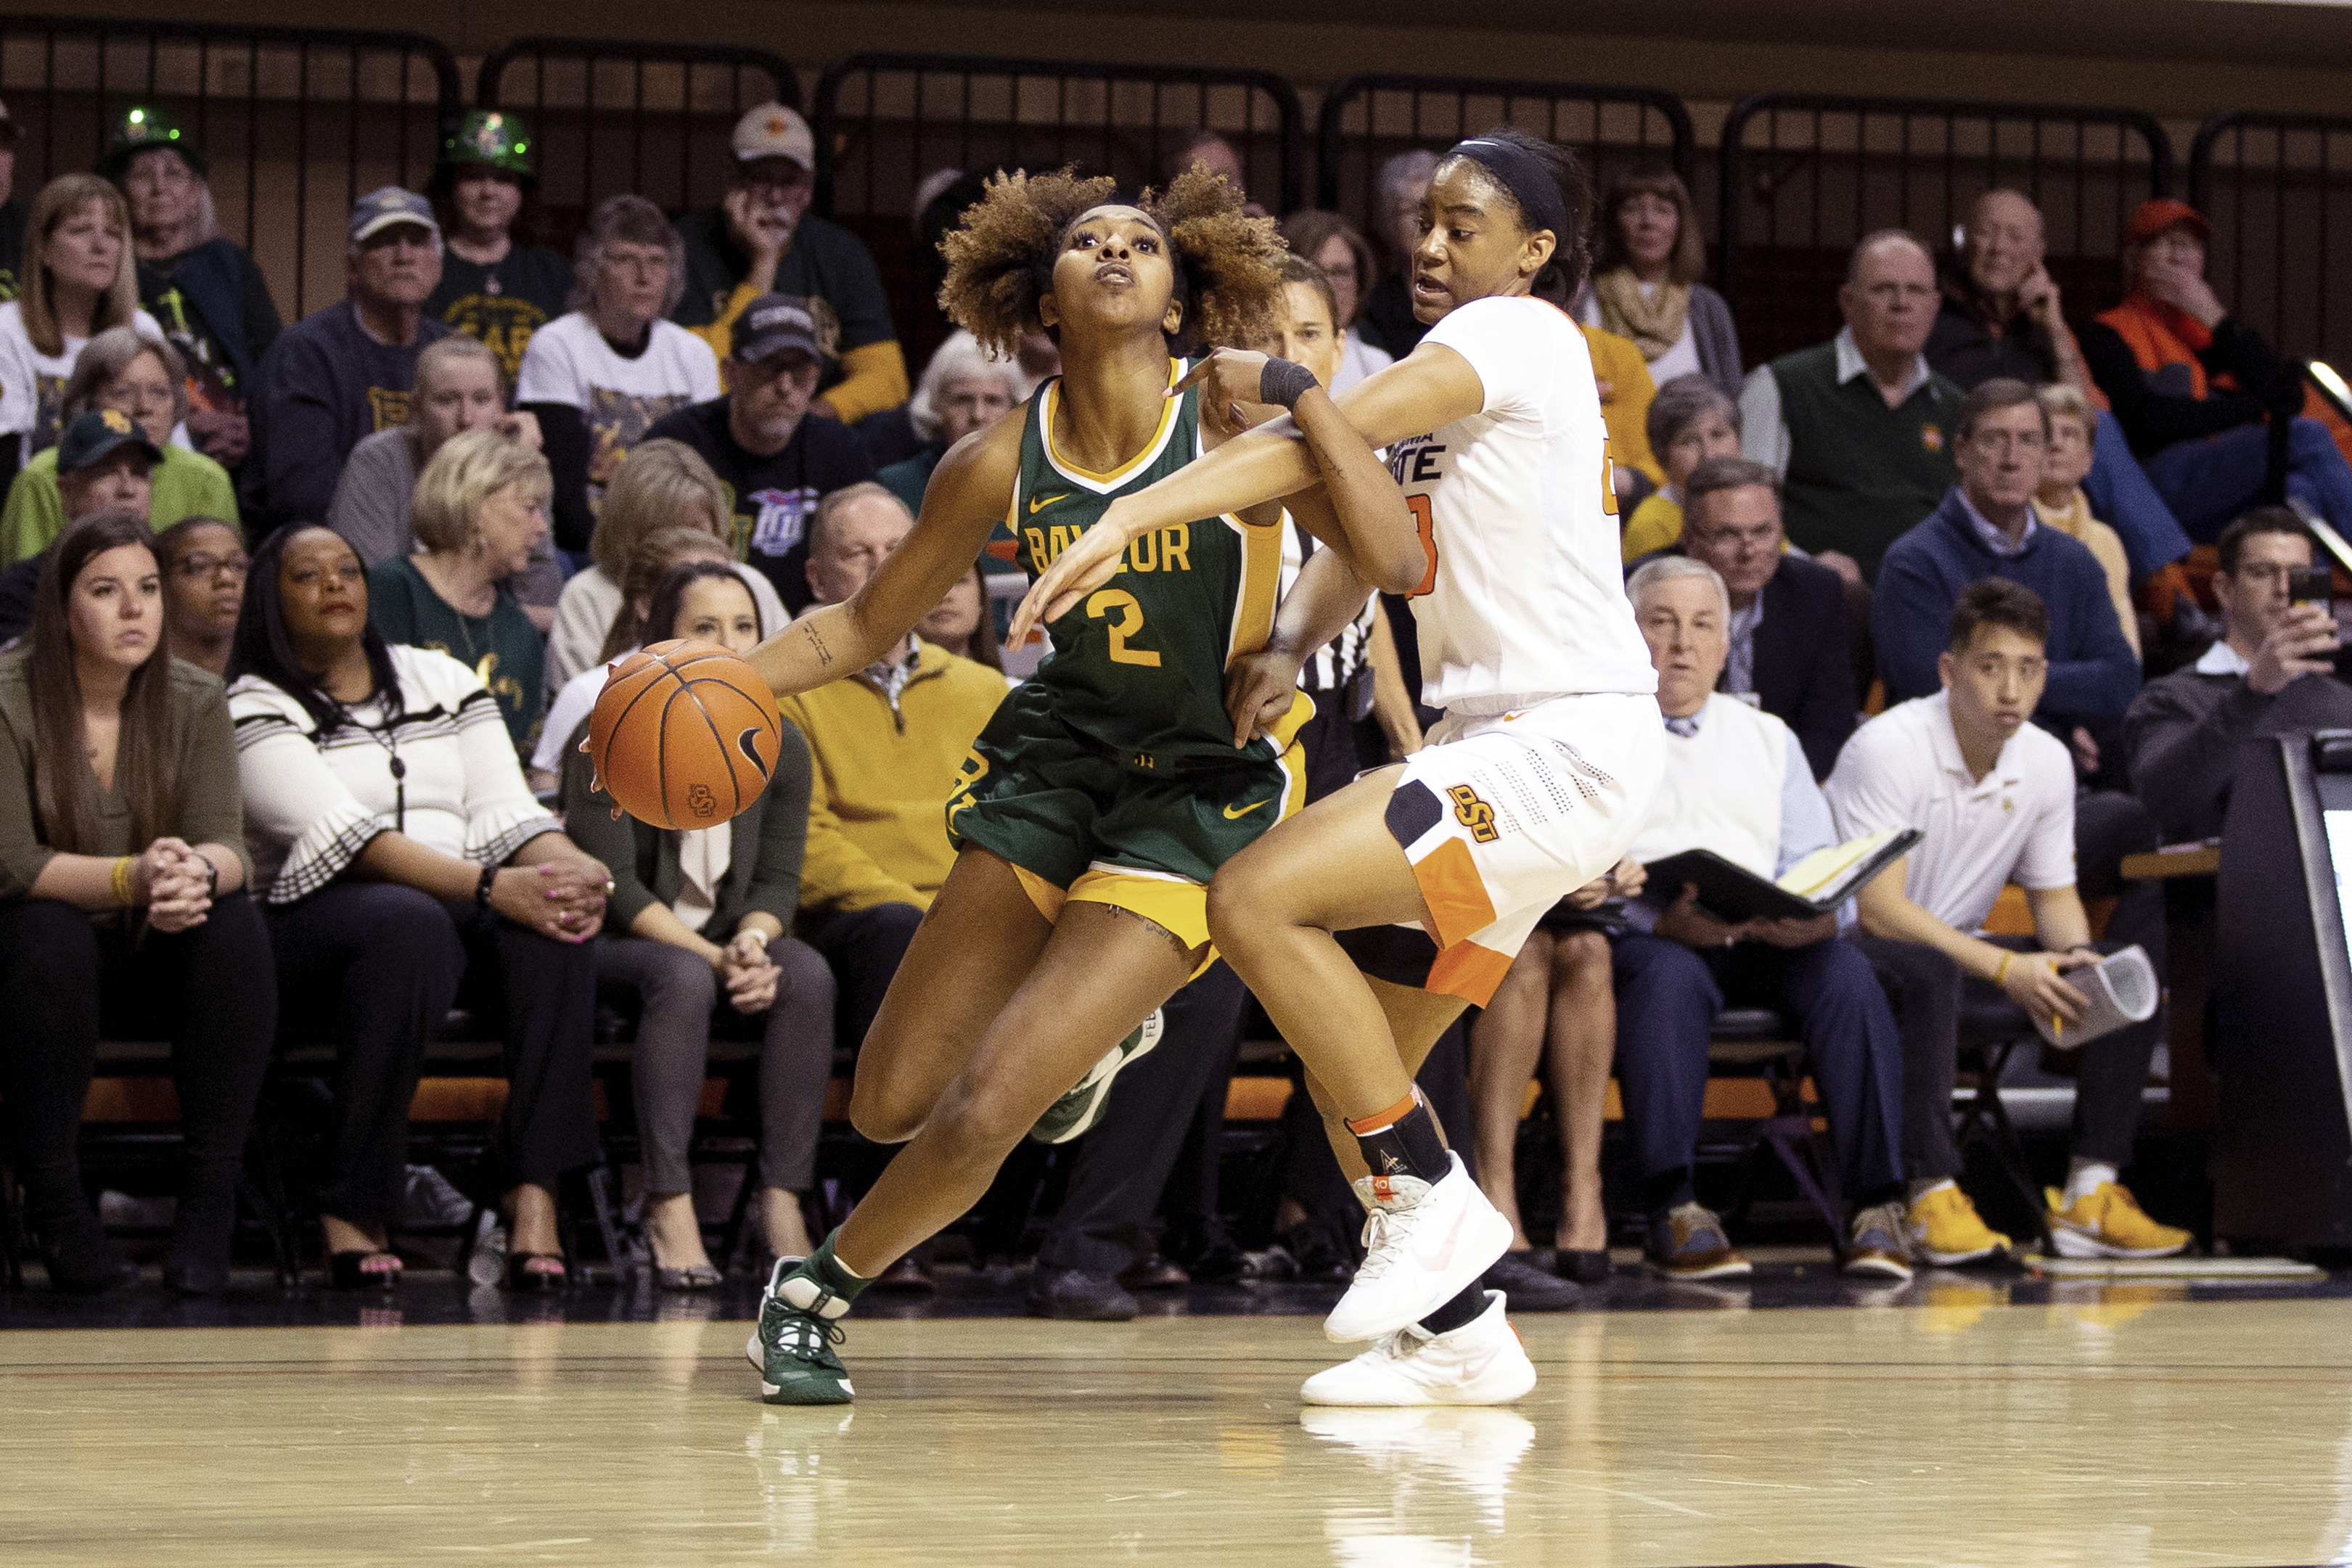 Cooper helps lead No. 2 Baylor to huge win over Okla. St.